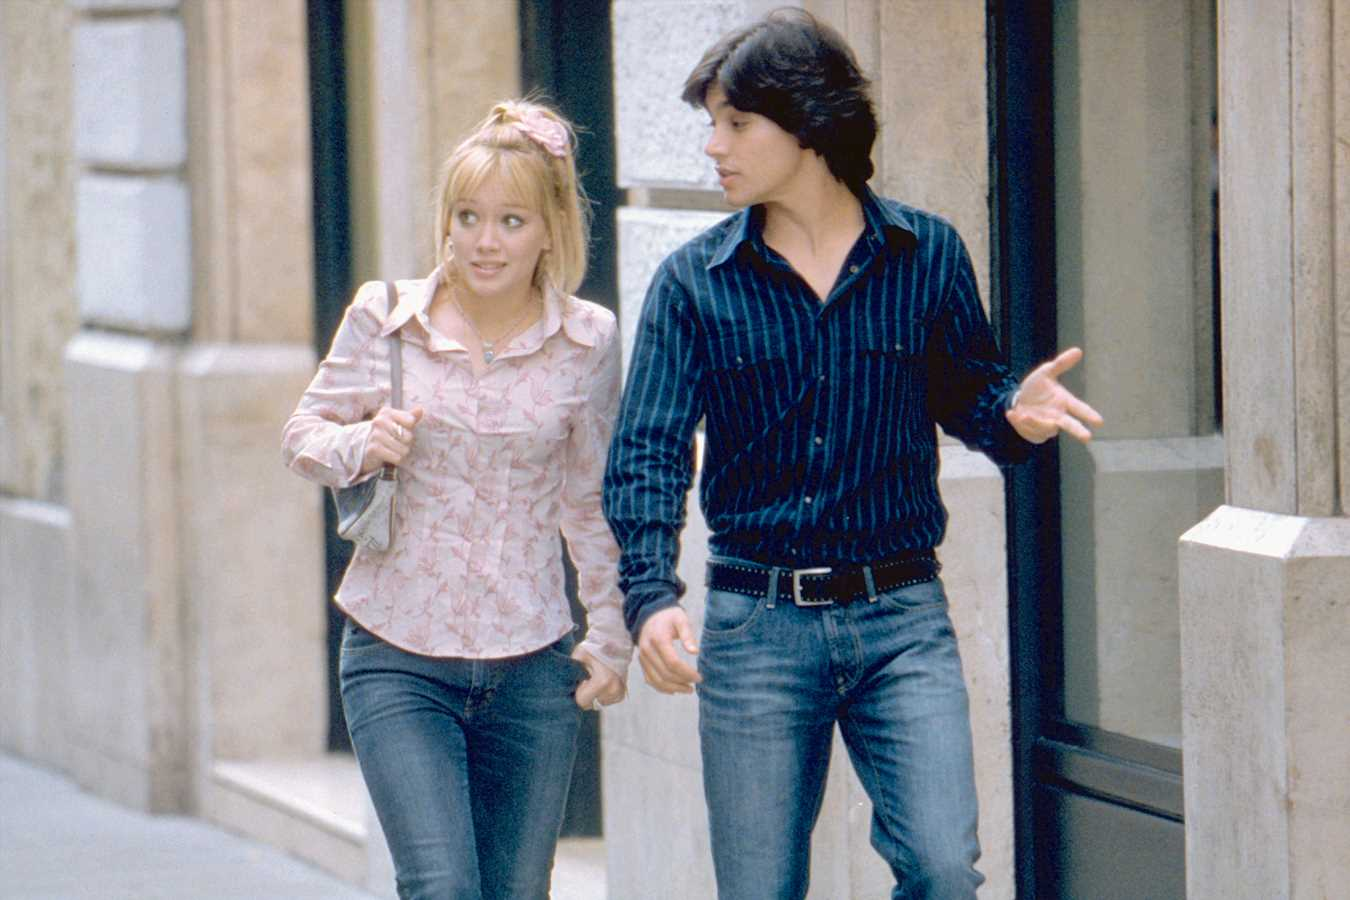 Hilary Duff Says Lizzie McGuire Isn't Engaged to Gordo in Disney+ Reboot — But Don't Count Him Out